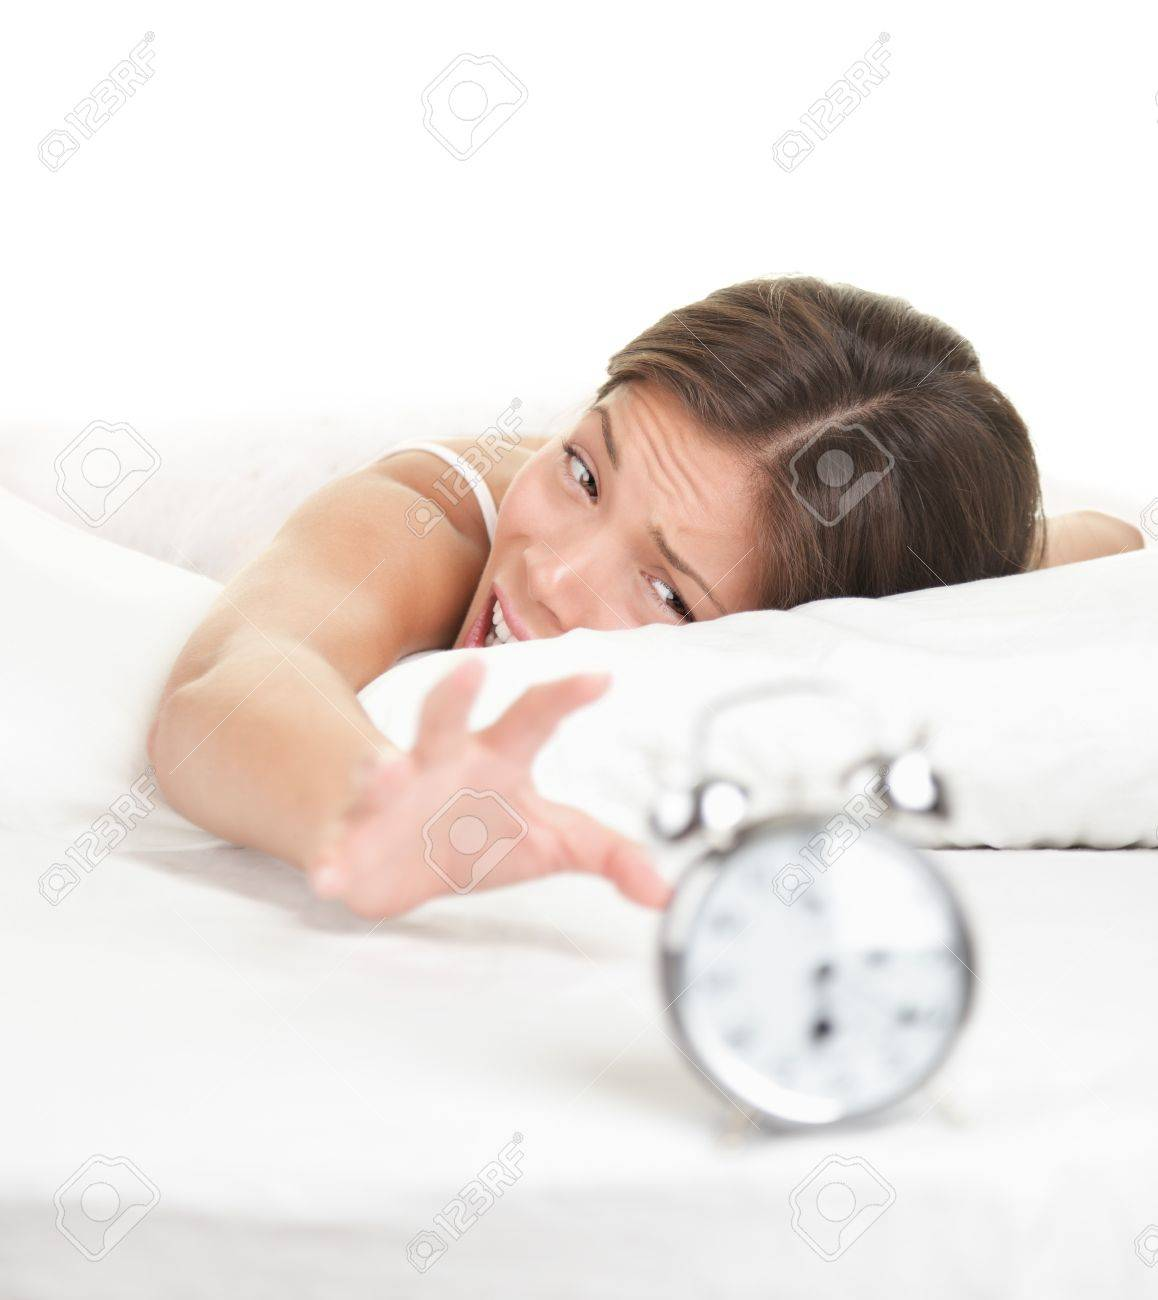 Woman and Alarm Clock. Funny image of woman lying in bed early in the morning. Isolated on white background. Stock Photo - 7439154